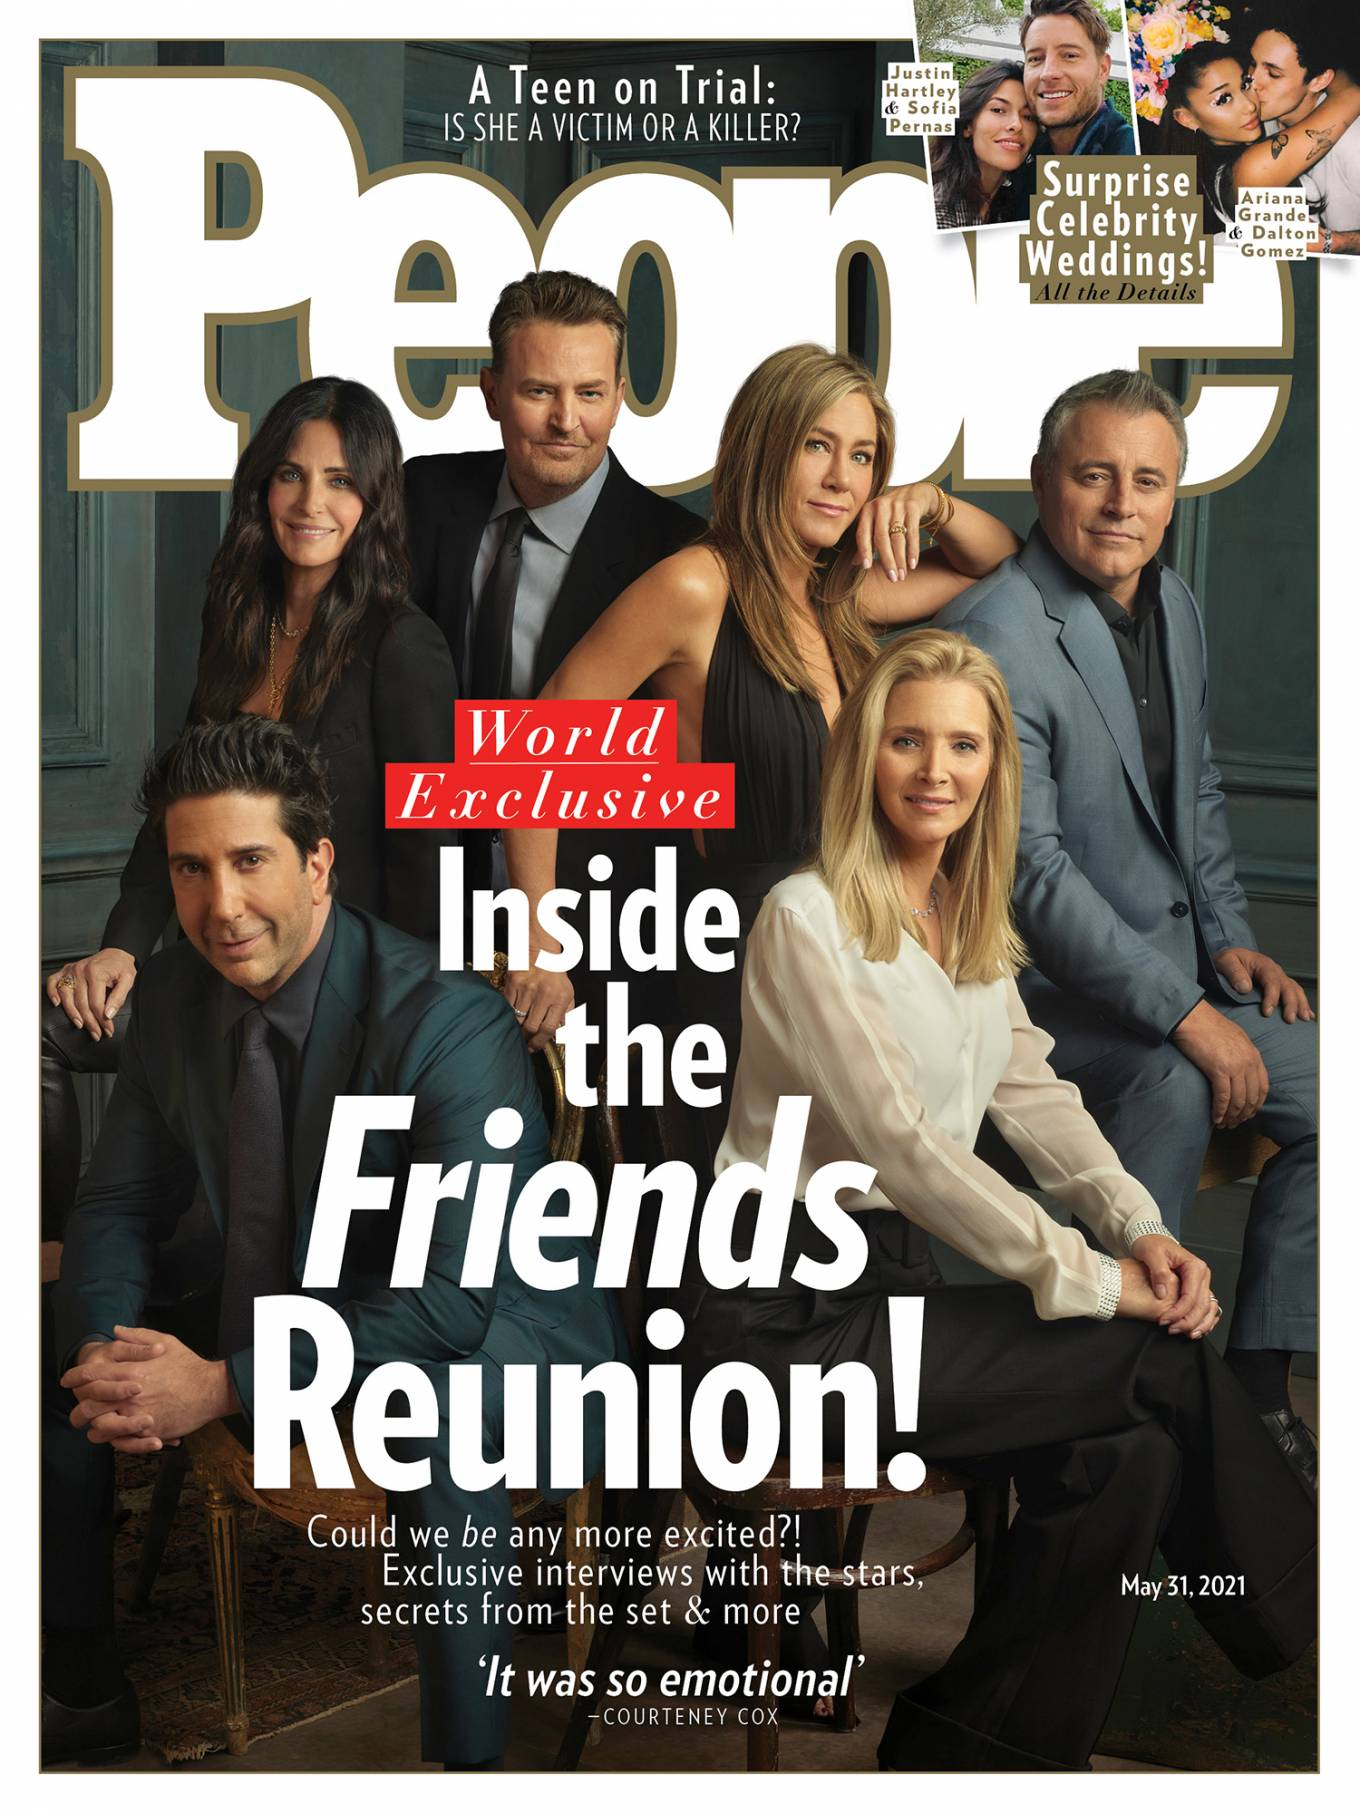 Cast of Friends - People Magazine (May 2021)